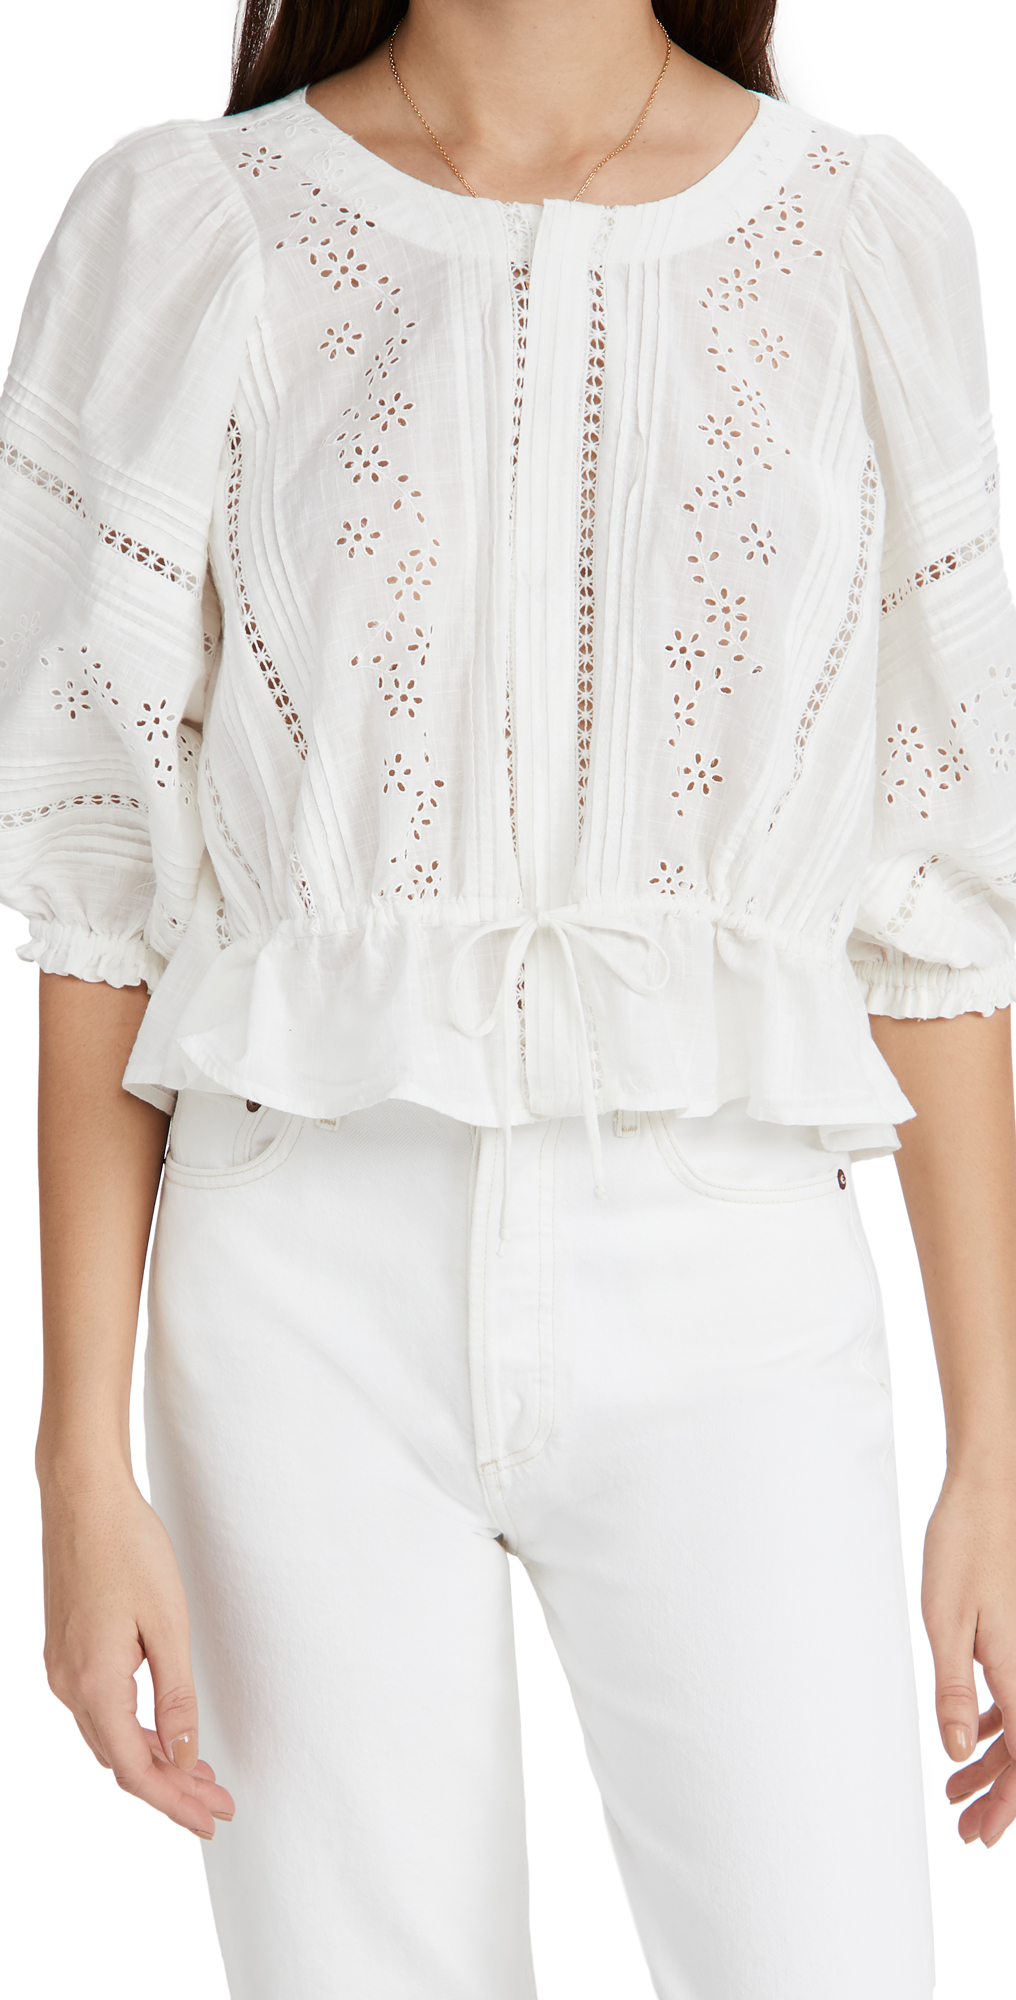 Free People Daisy Chains Eyelet Top